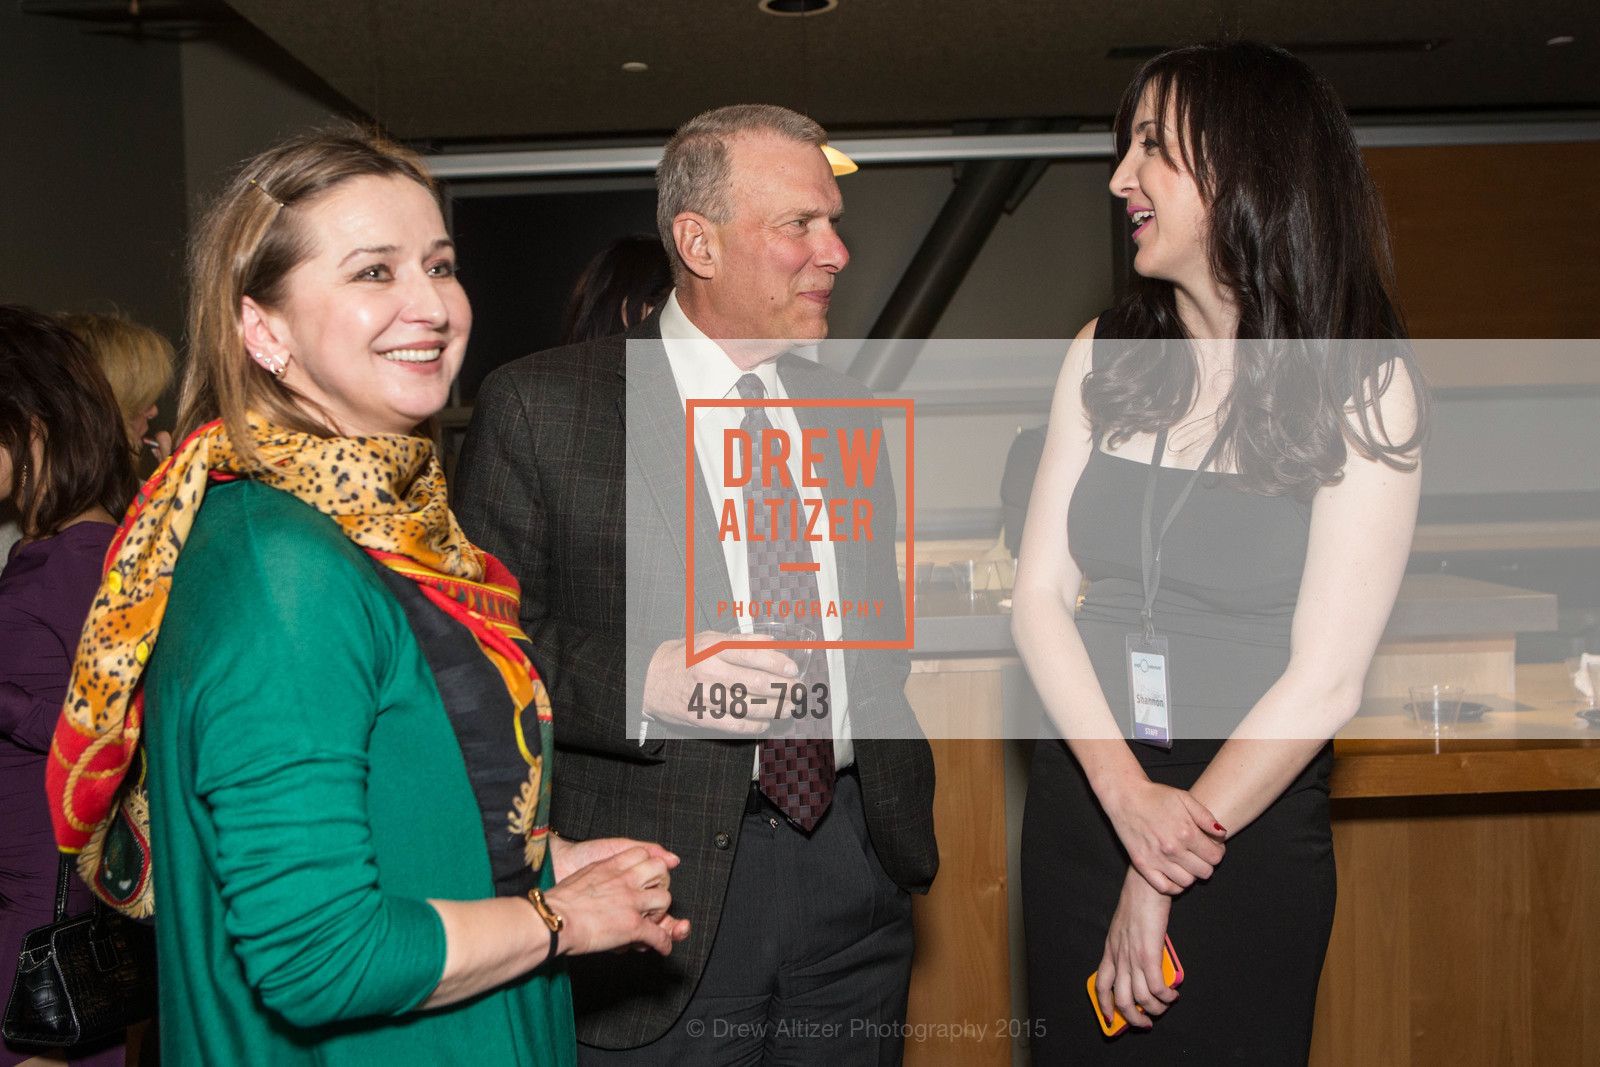 Anjelika Koulebakina, David Gockley, Shannon Eliot, SF BRAVO CLUB Sneak Peek at the EXPLORATORIUM, US, April 23rd, 2015,Drew Altizer, Drew Altizer Photography, full-service agency, private events, San Francisco photographer, photographer california